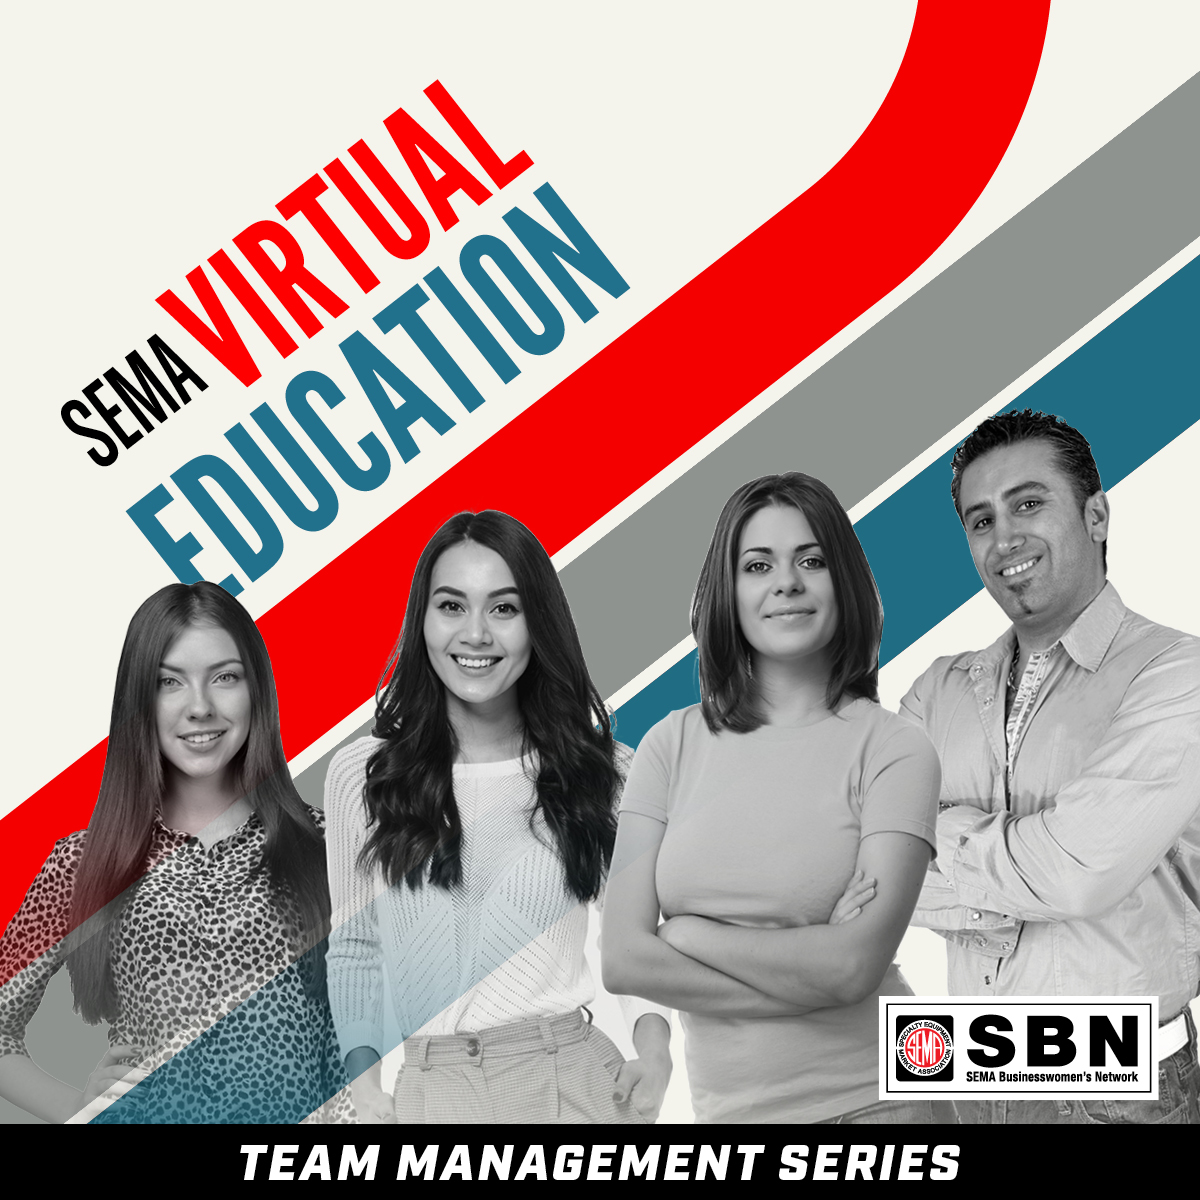 SEMA Virtual Education - Reducing Micromanagement and Increasing Employee Self-Sufficiency